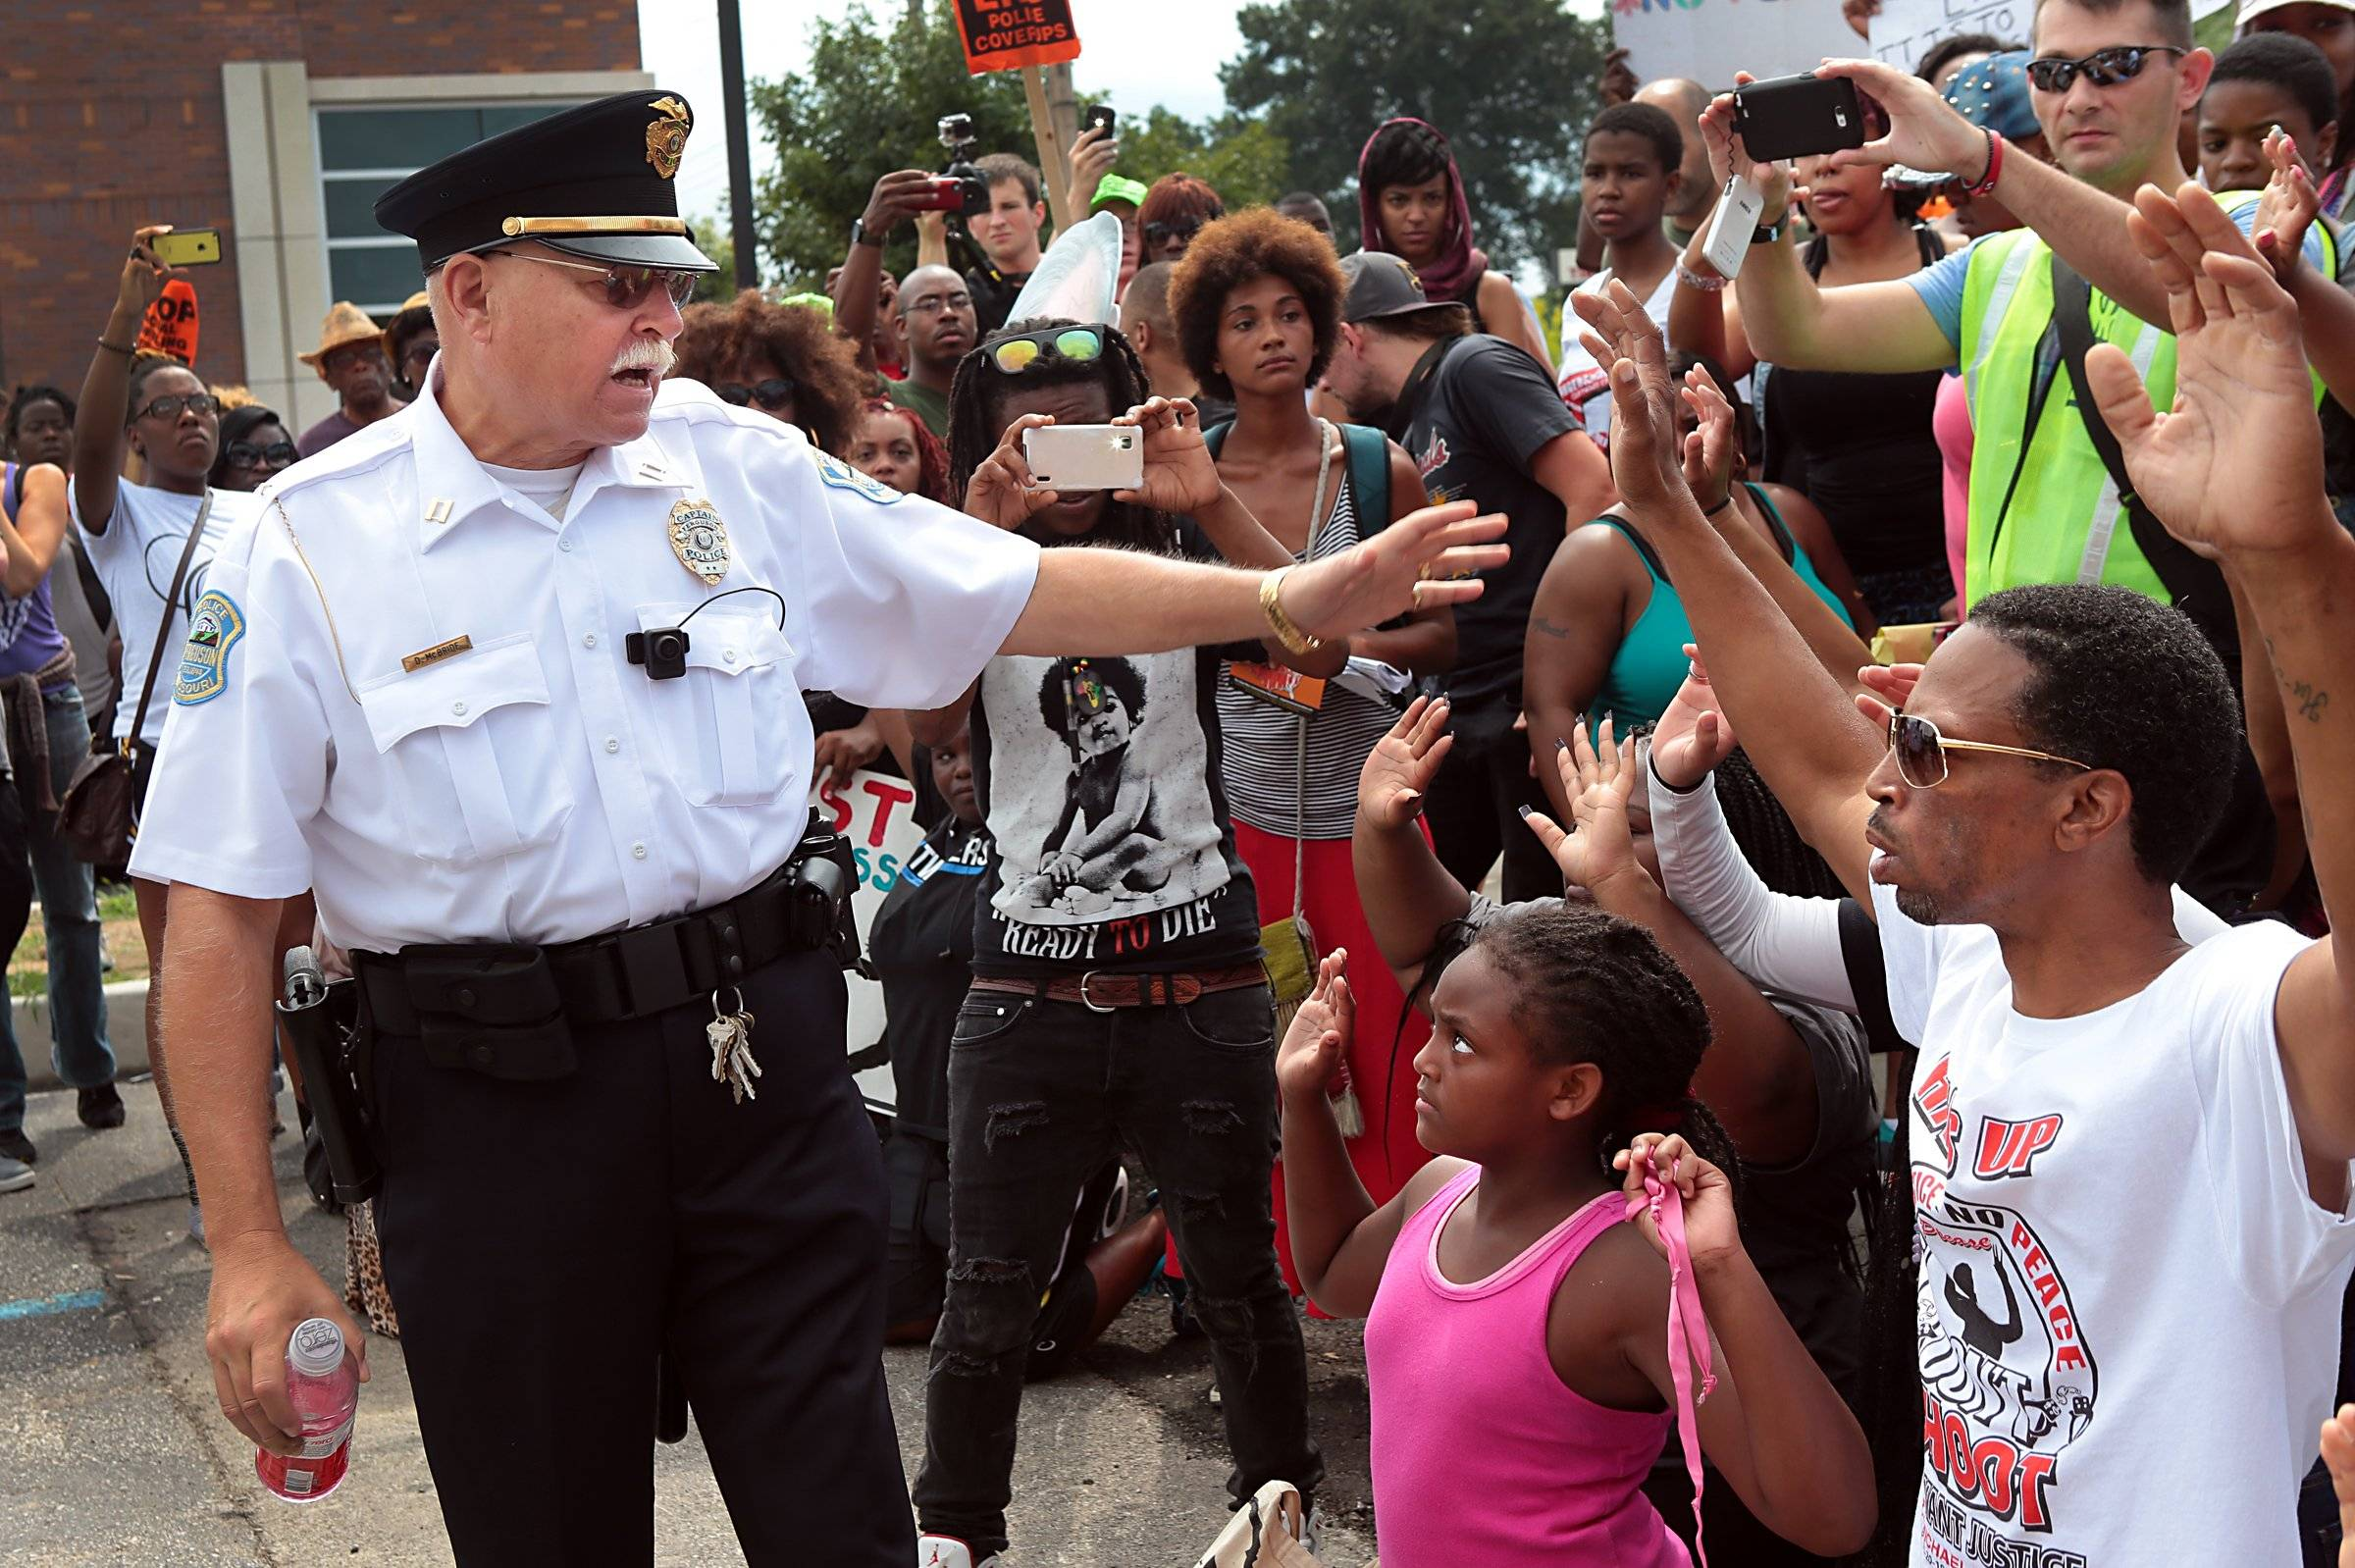 Ferguson Police Capt. D. McBride orders protesters back to the sidewalk at a demonstration in front of the police station in Ferguson, Mo., Aug. 30, for Michael Brown, an unarmed black 18-year-old who was fatally shot by a white police officer three weeks earlier. Protesters ignored his order, instead moving further up the driveway.